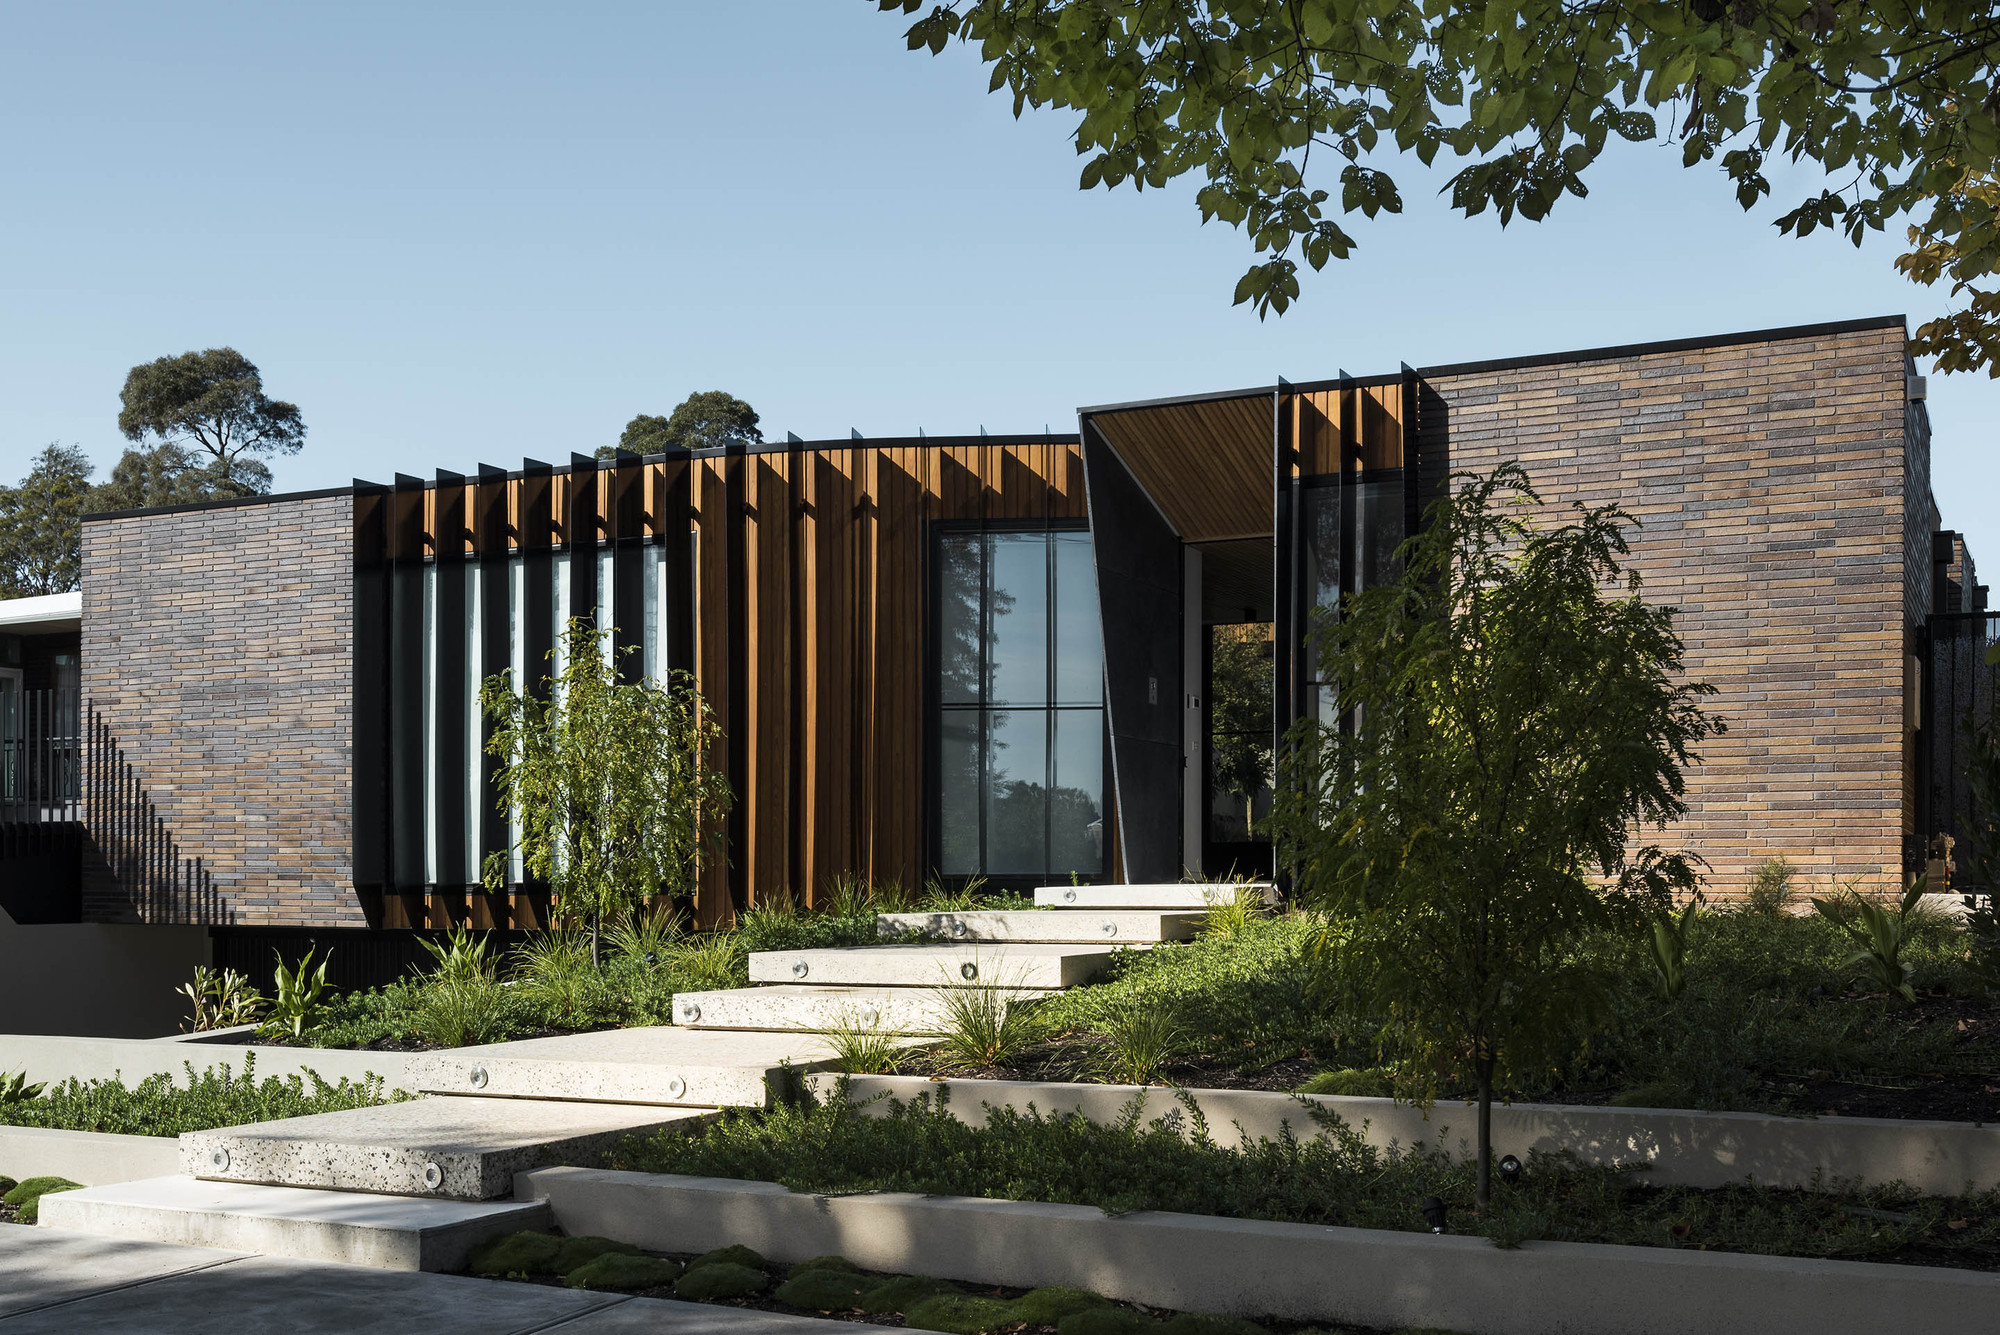 Gallery of courtyard house figr architecture design 9 for Courtyard architecture design